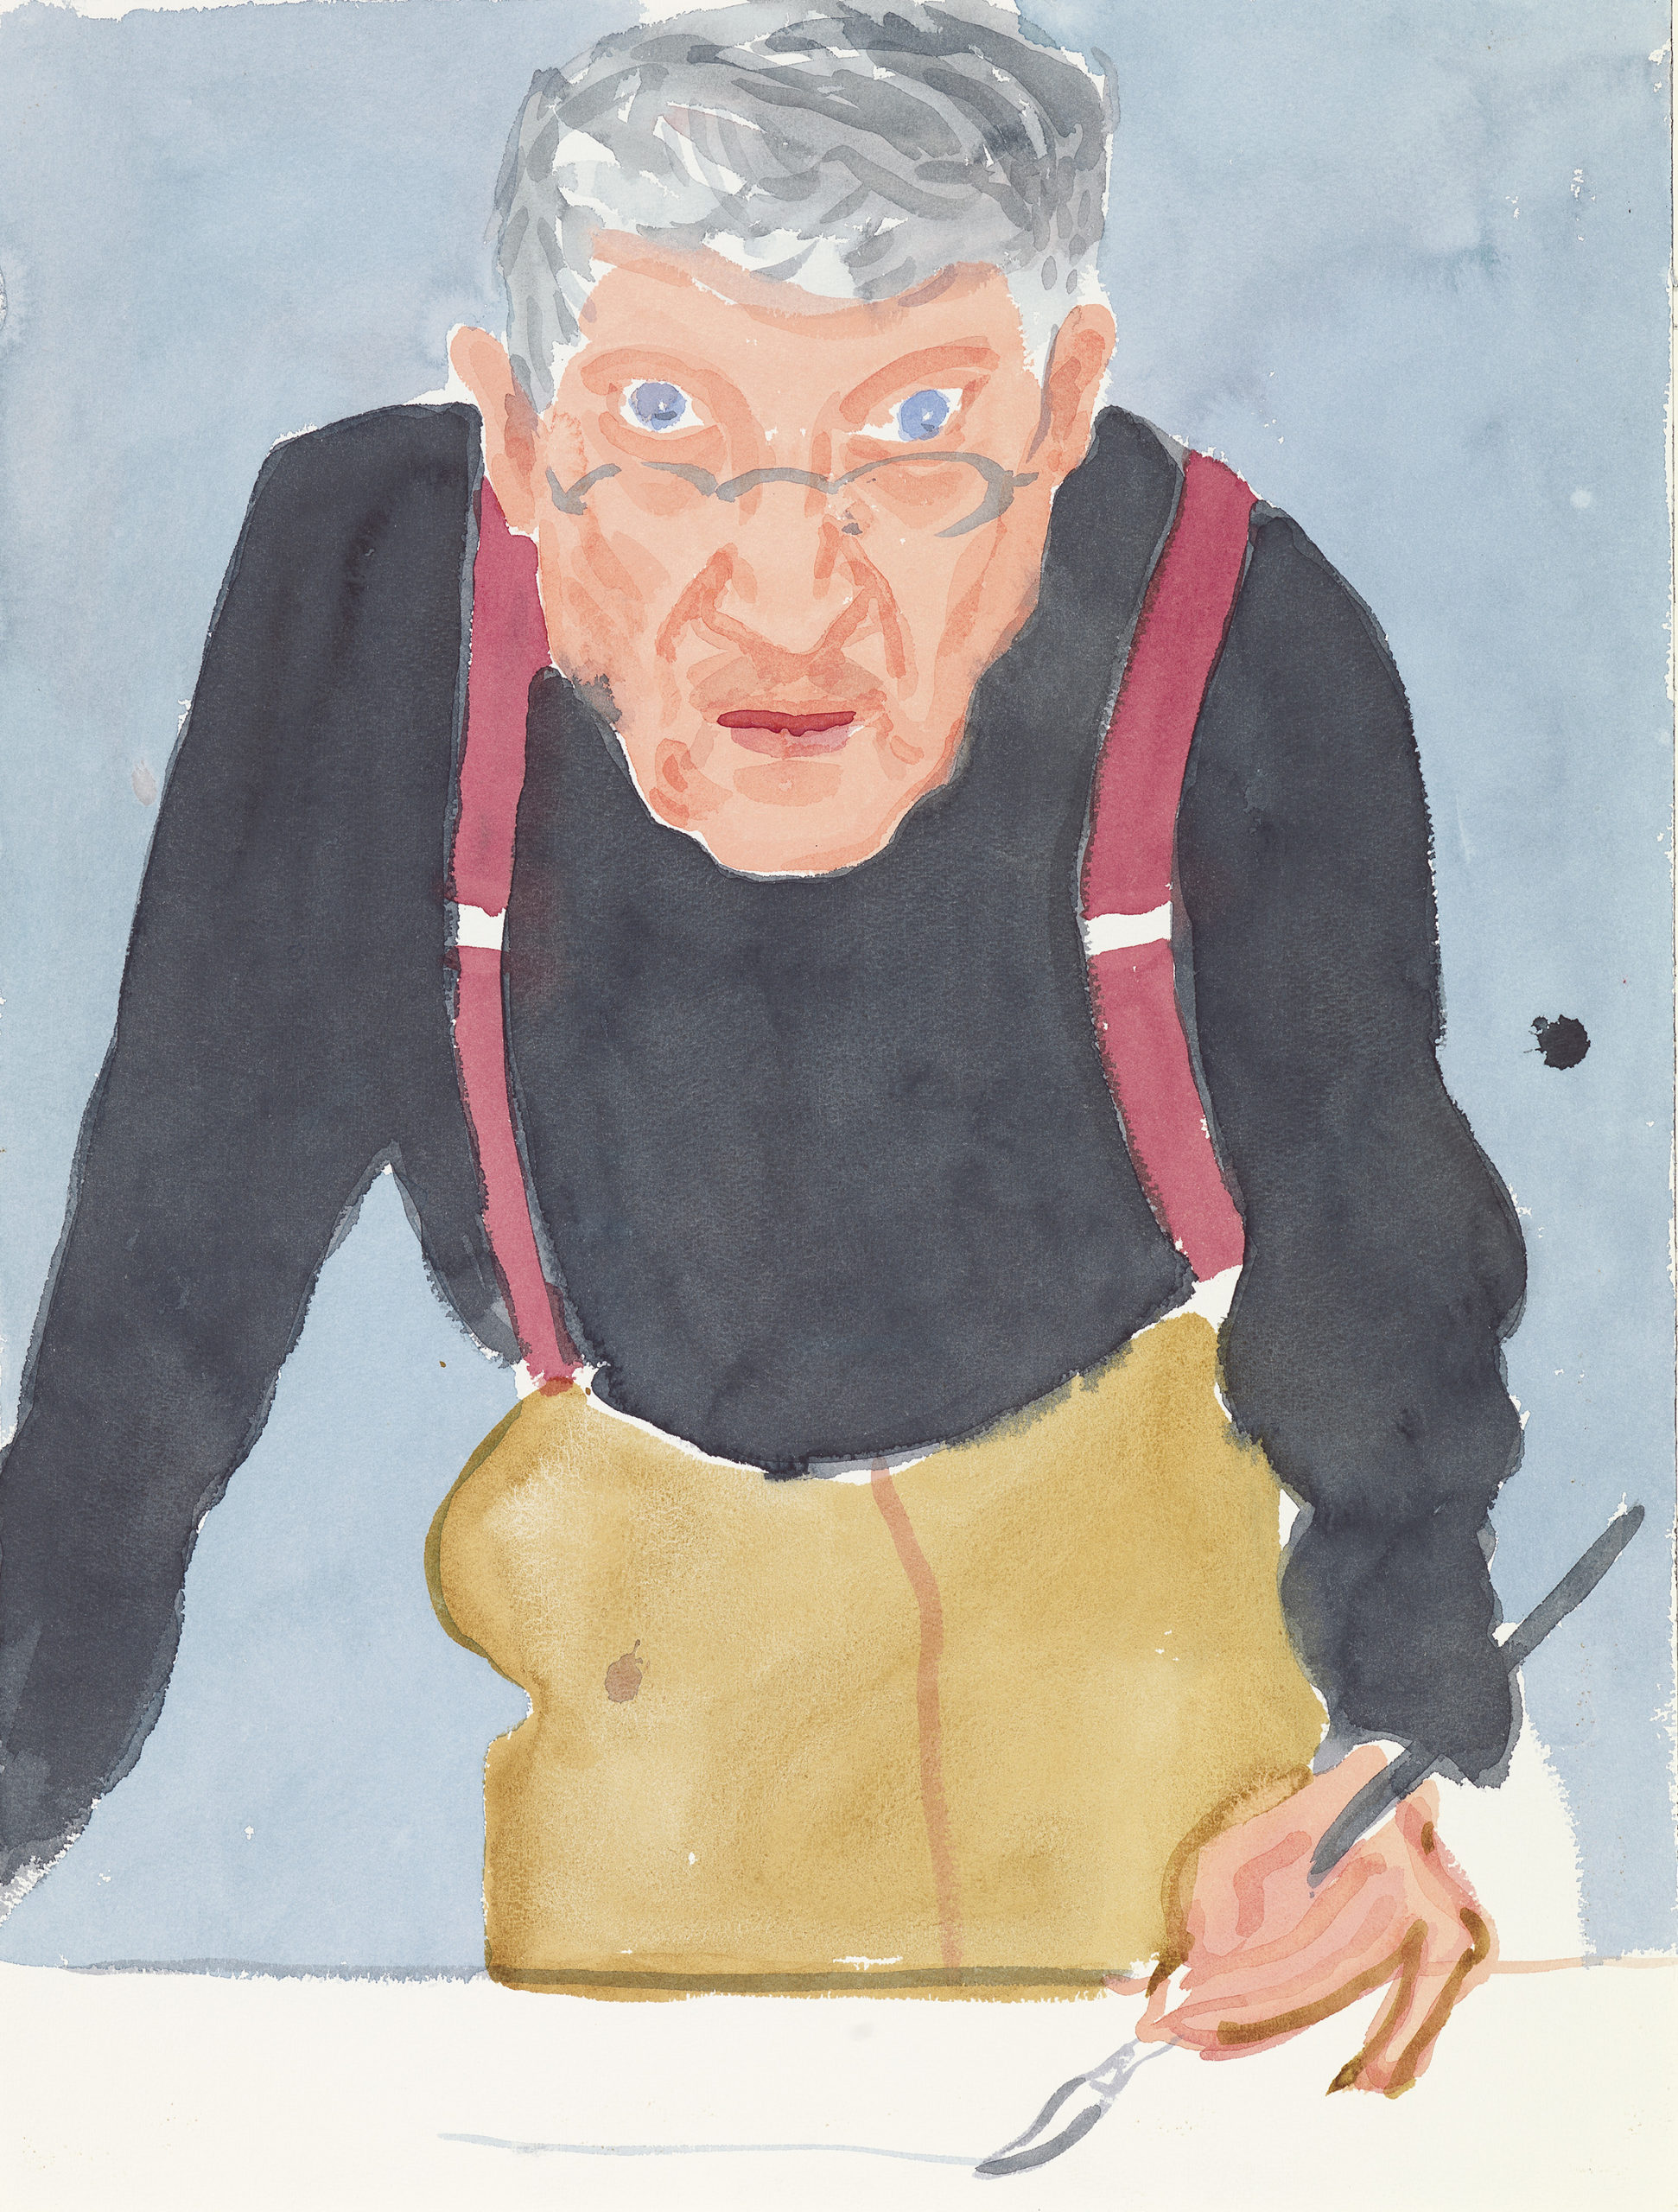 David Hockney - Self Portrait with Red Braces, 2003